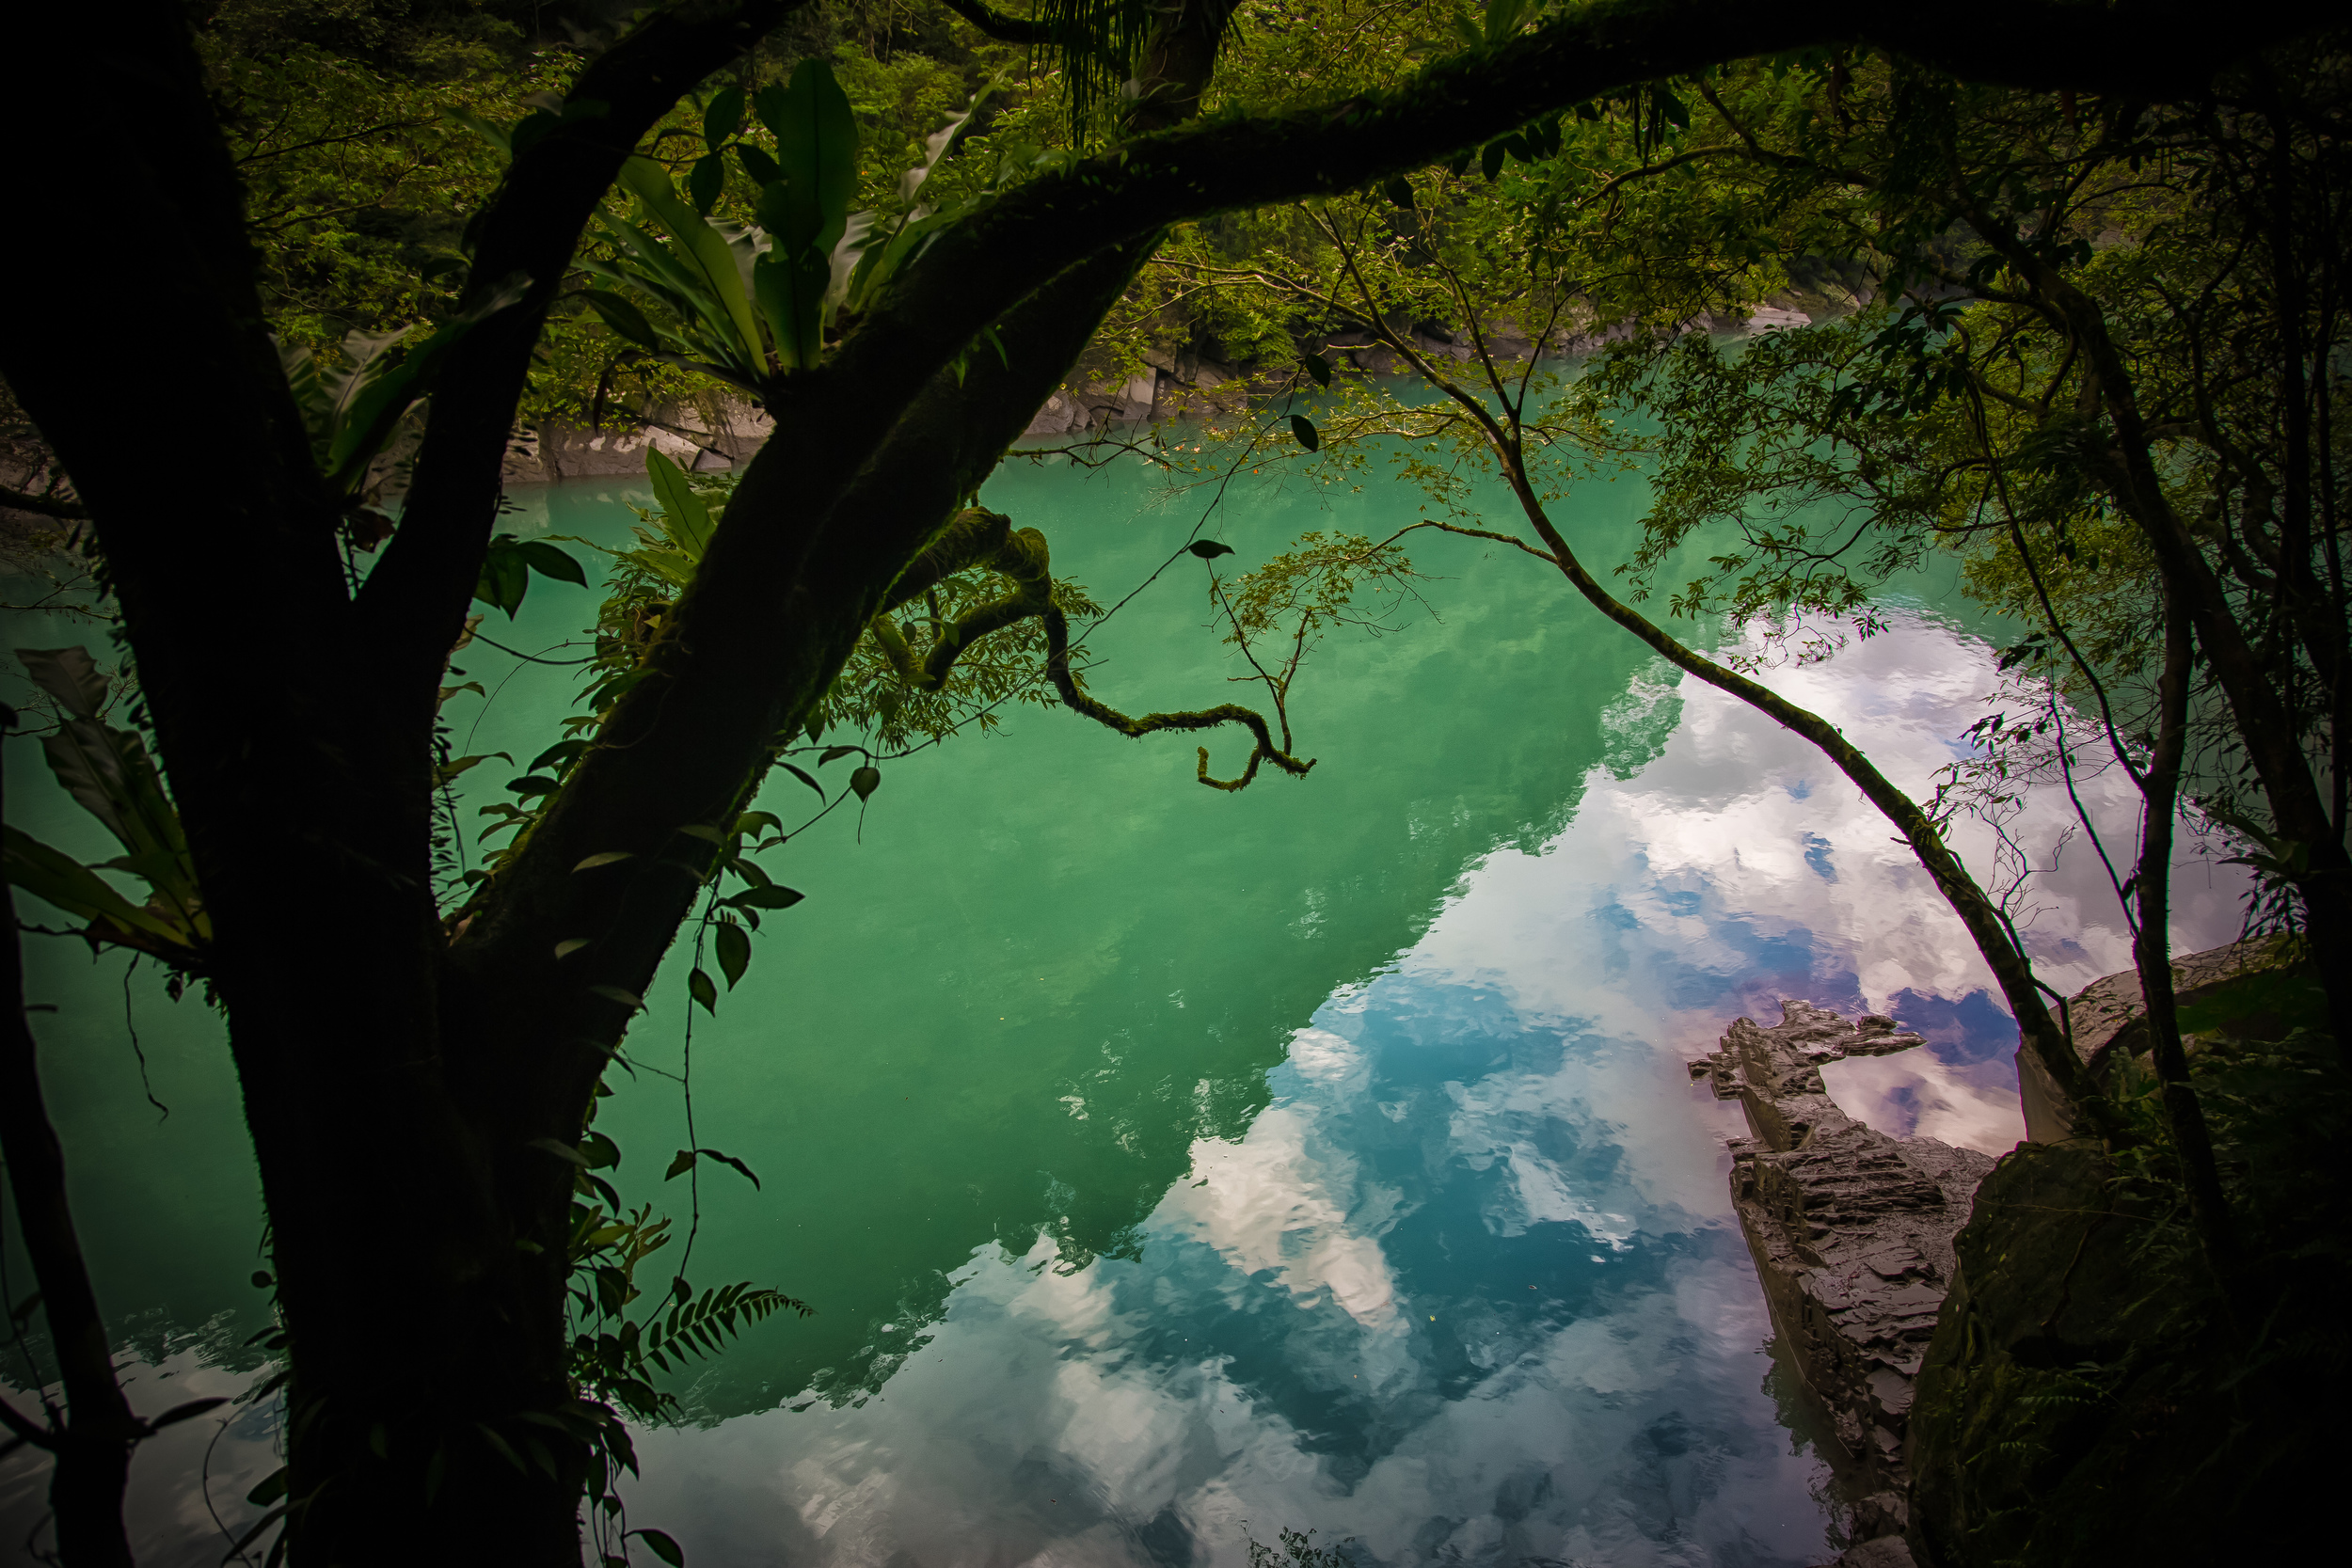 The emerald green water of the Nanshi River